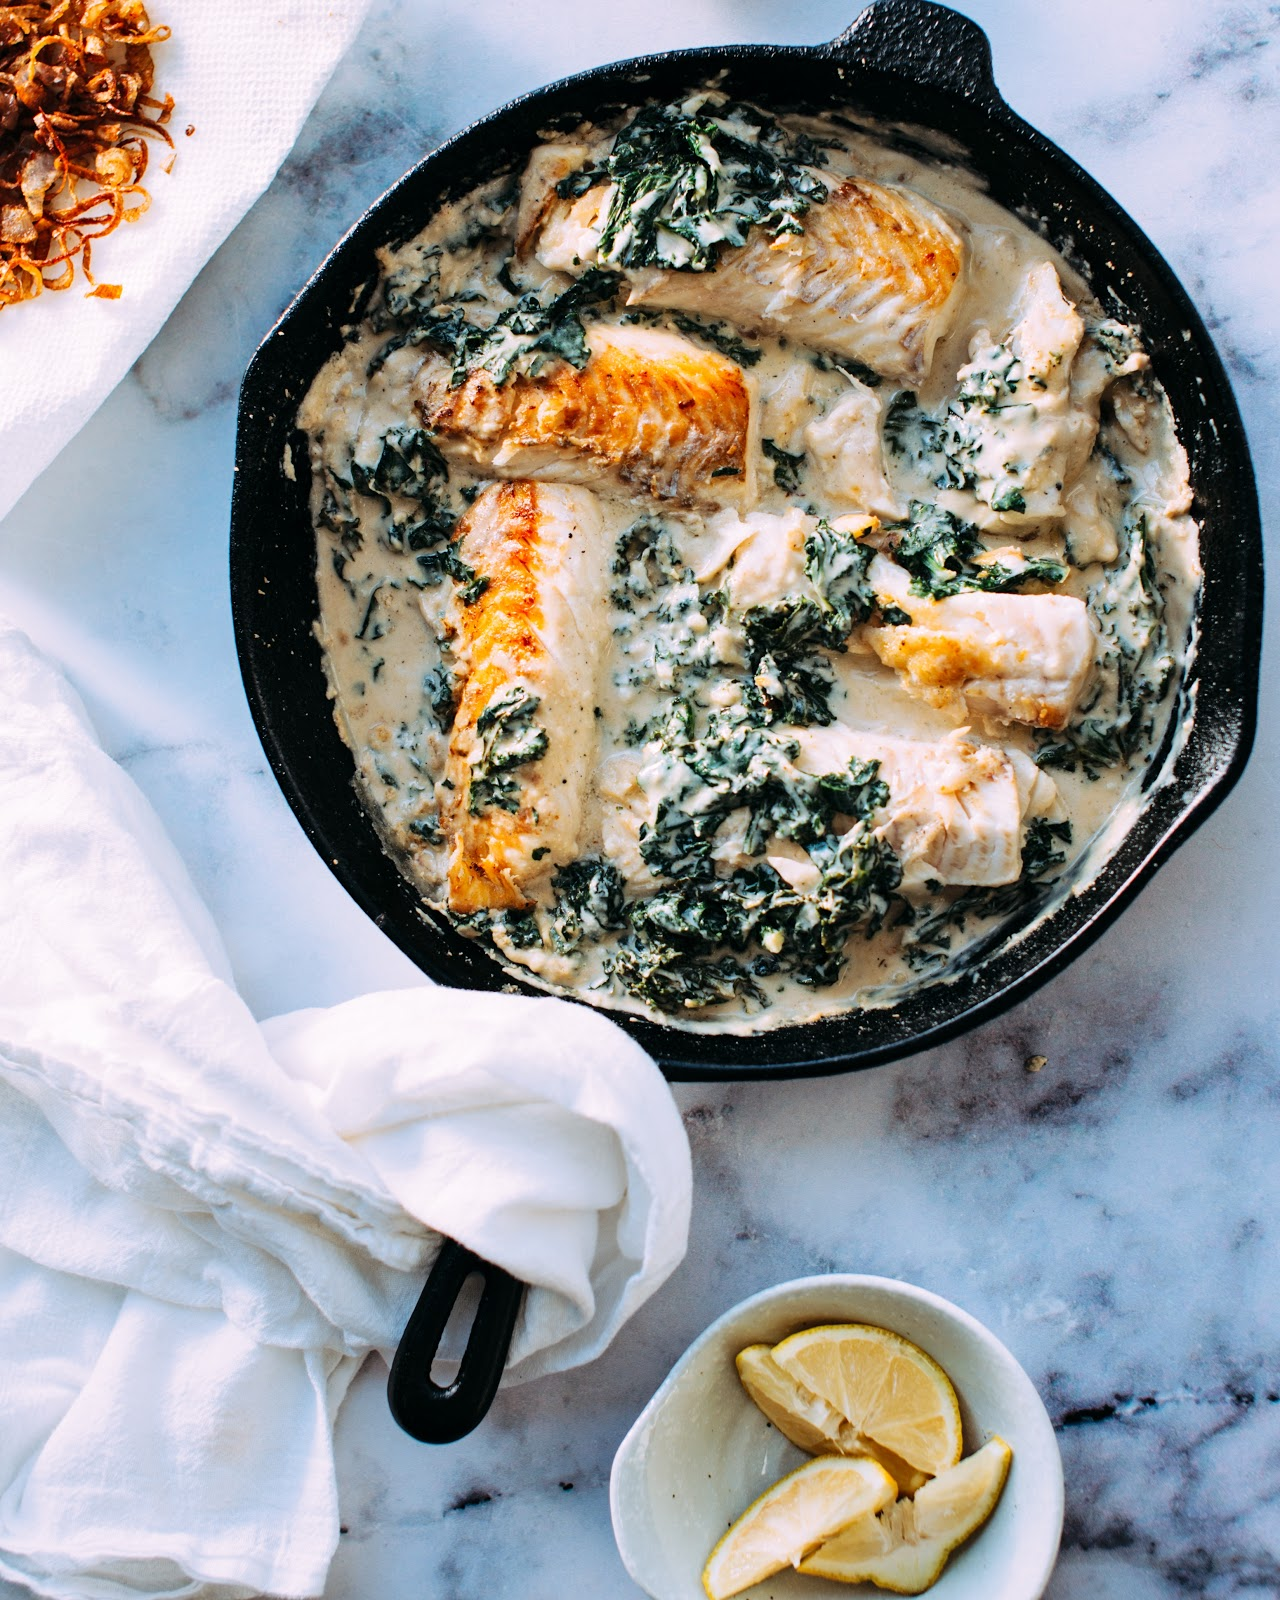 Birds eyes view of creamy salmon dish in skillet with kale and a pot of lemon wedges on the side.